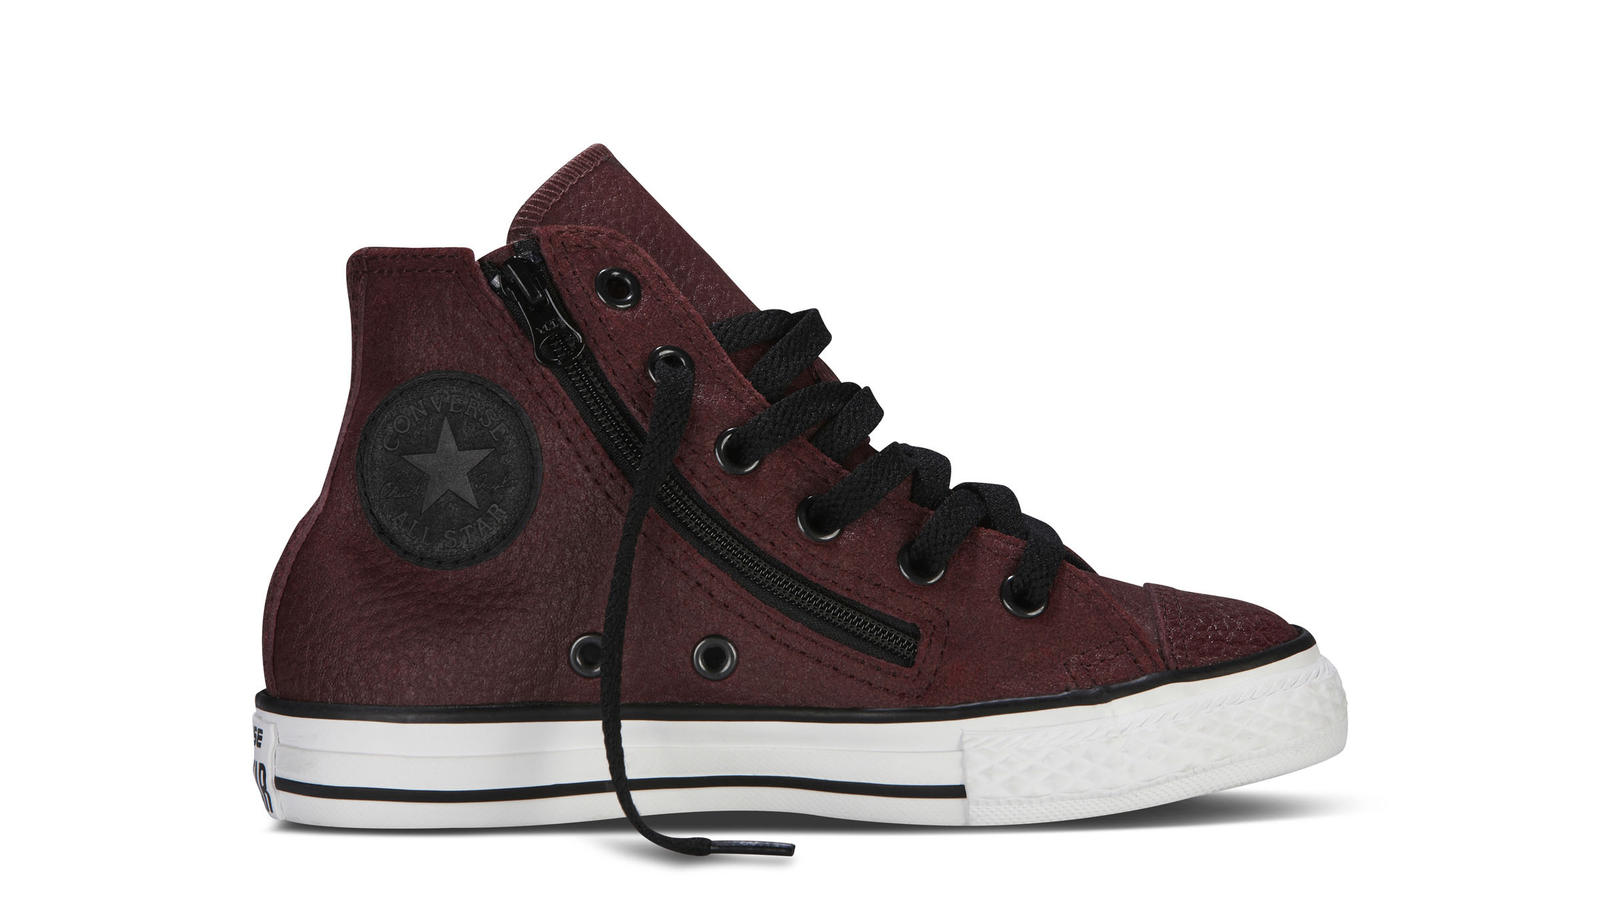 0c36621e76df Converse Fall 2013 All Star Footwear Collections Celebrate ...